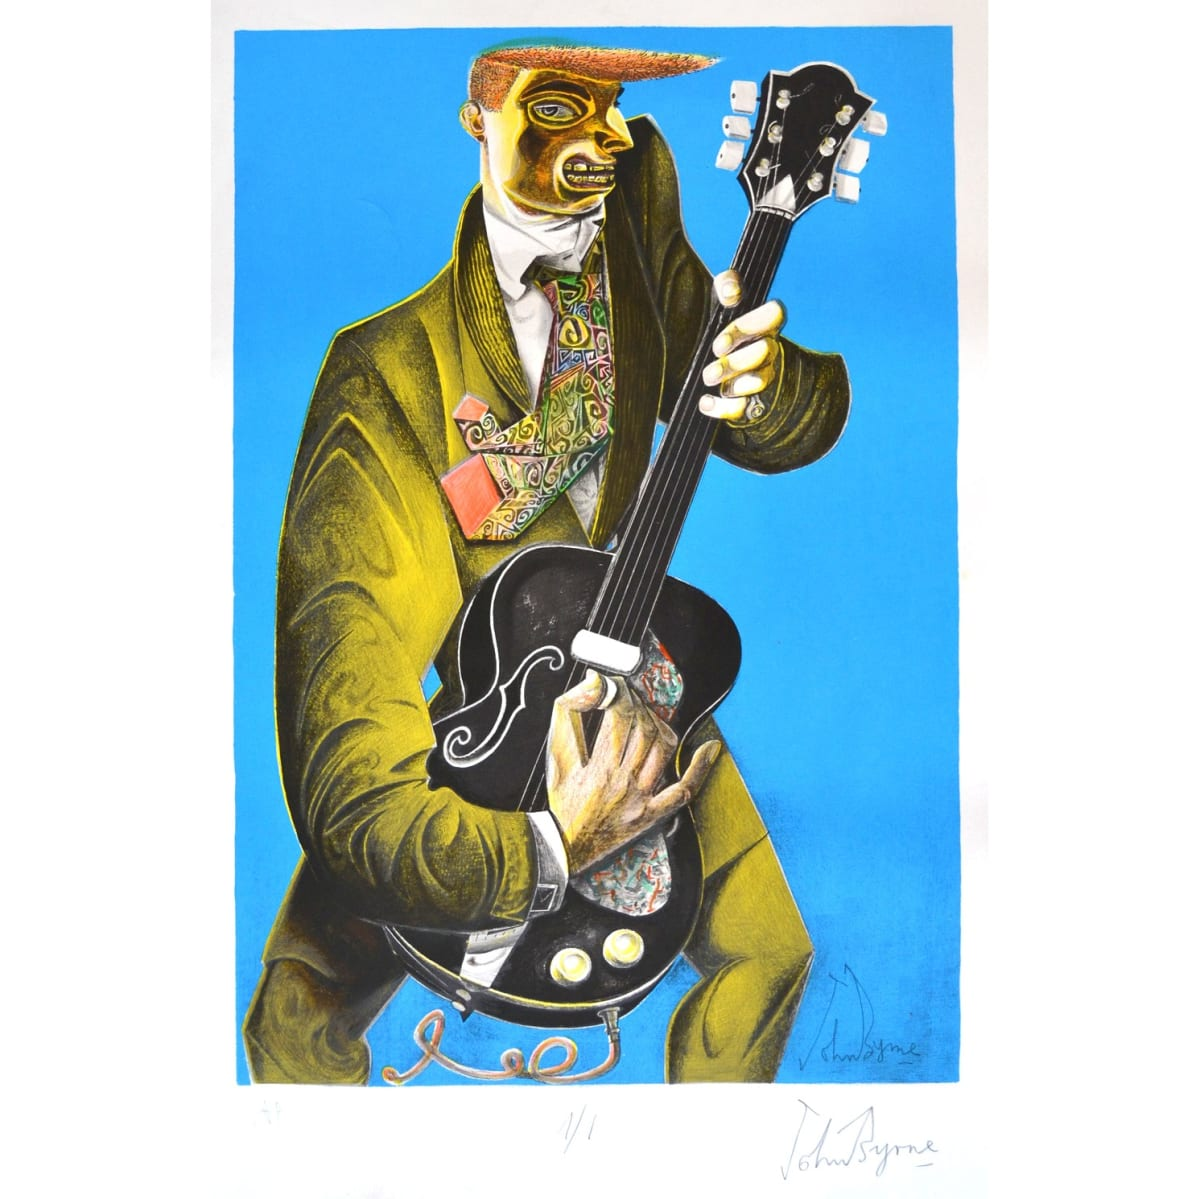 John Byrne A/P, 2019 signed, titled and numbered 1/1 in pencil to margin hand coloured lithograph 26 3/4 x 18 3/4 inches